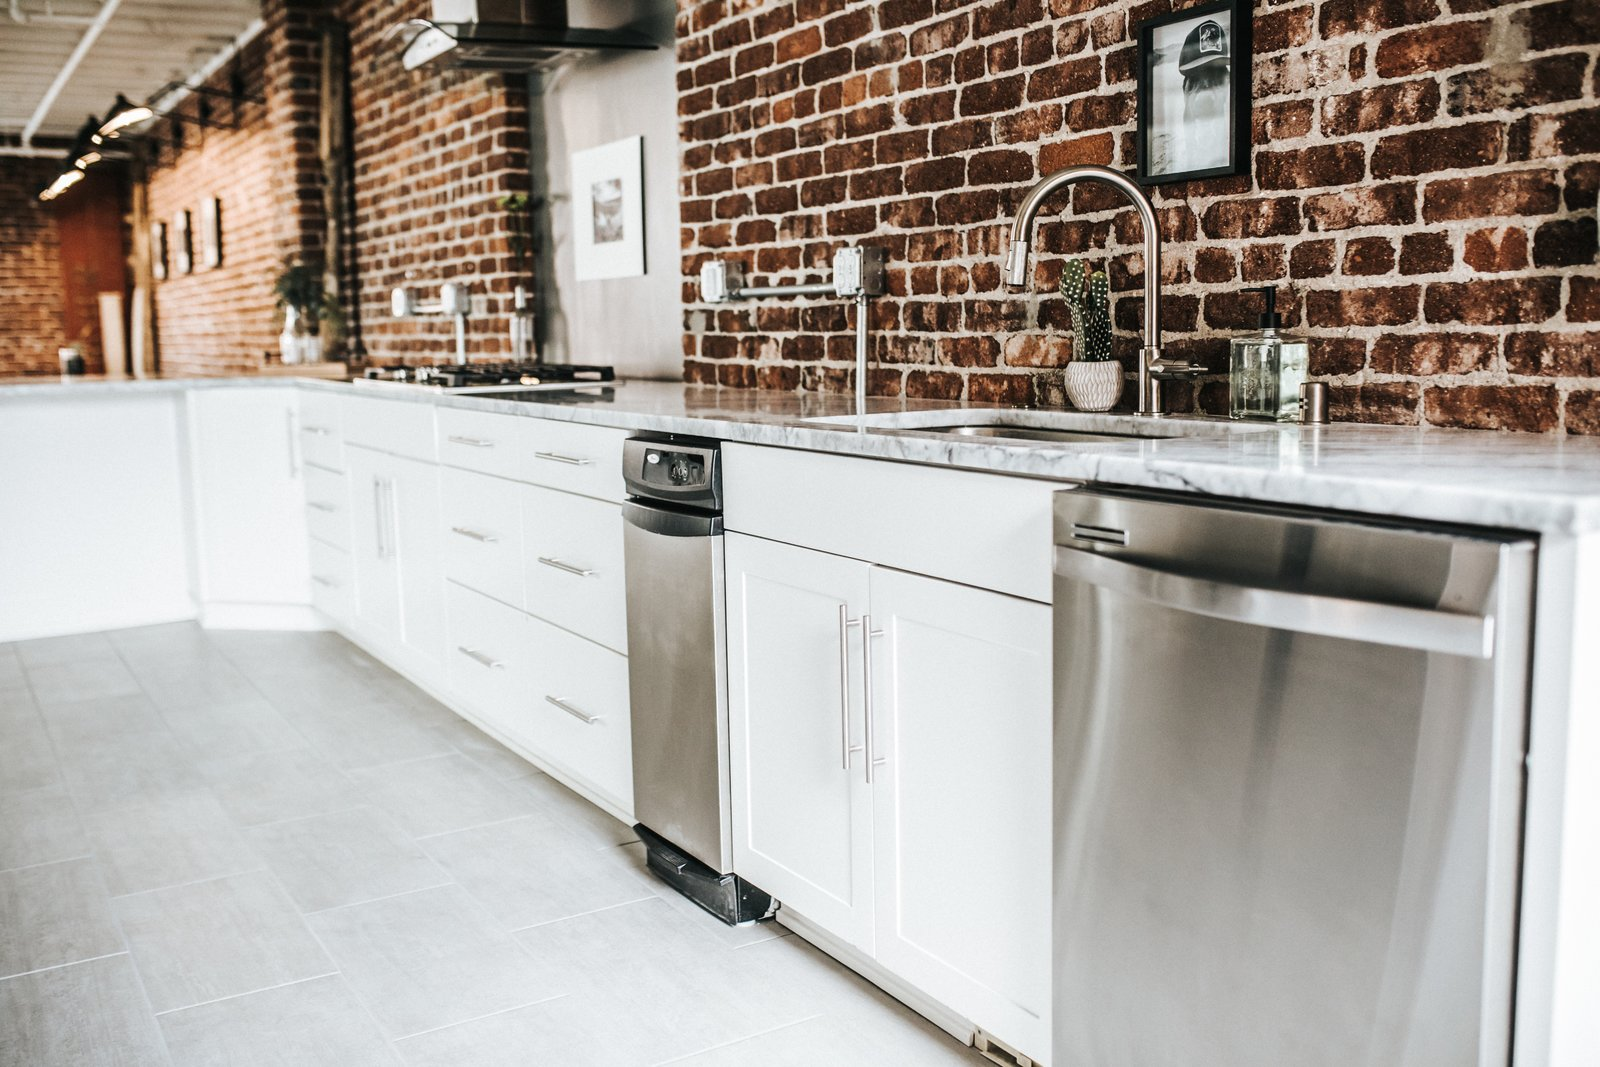 Kitchen, Terrazzo Floor, Wood Cabinet, Cooktops, Range Hood, White Cabinet, Brick Backsplashe, Marble Counter, and Dishwasher Kitchen  Frindle